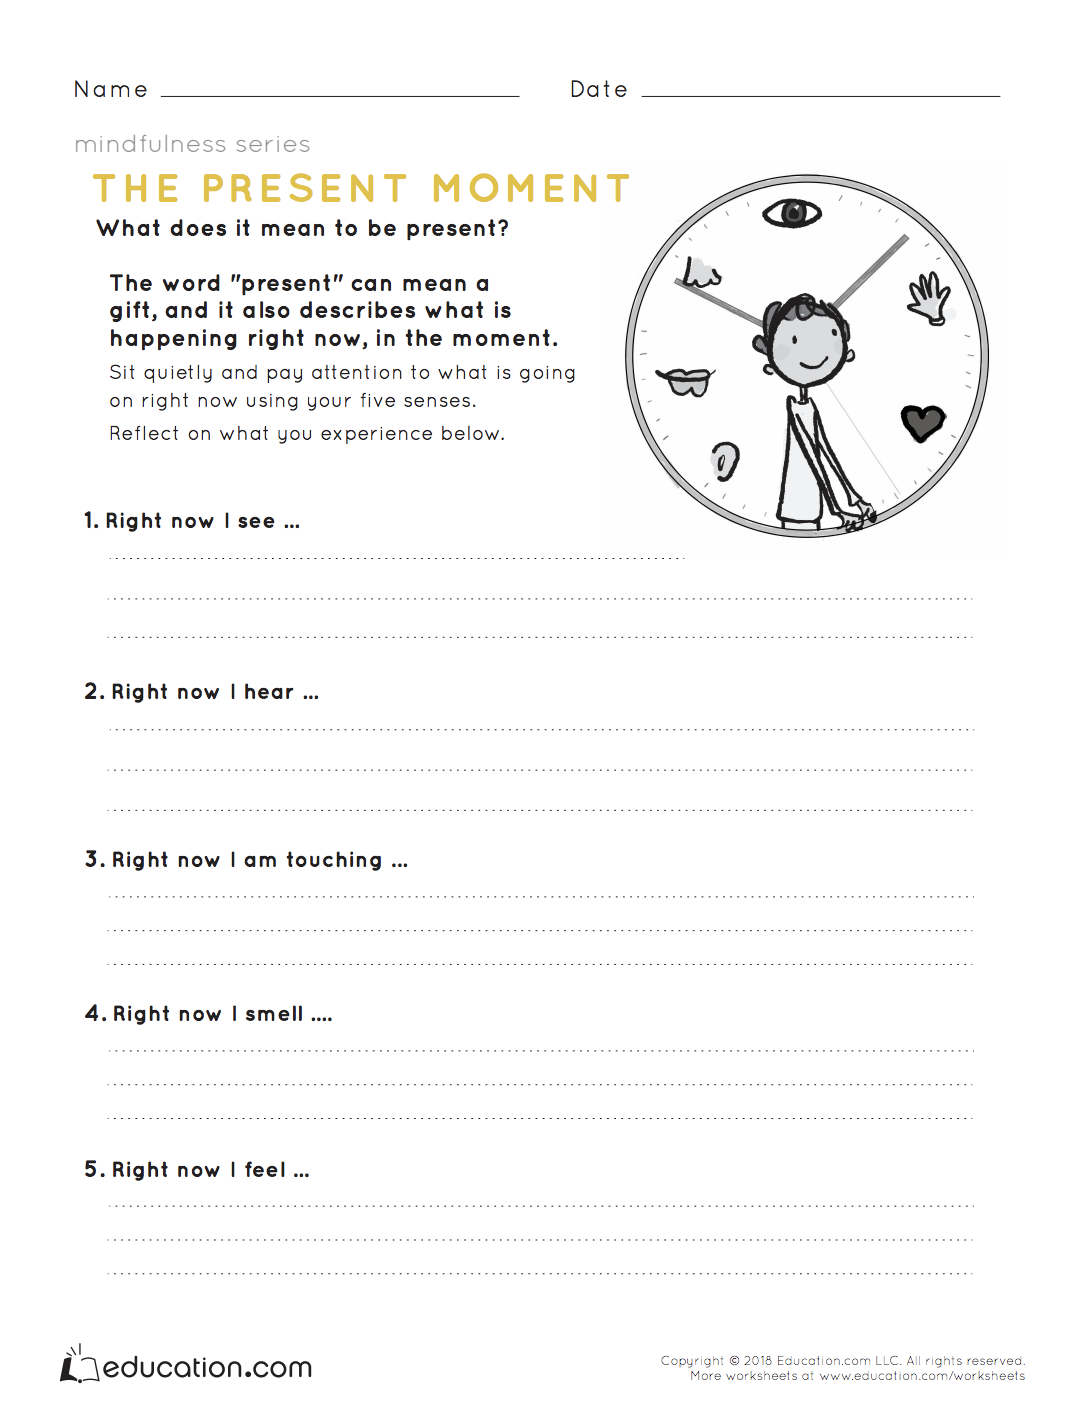 Mindfulness The Present Moment